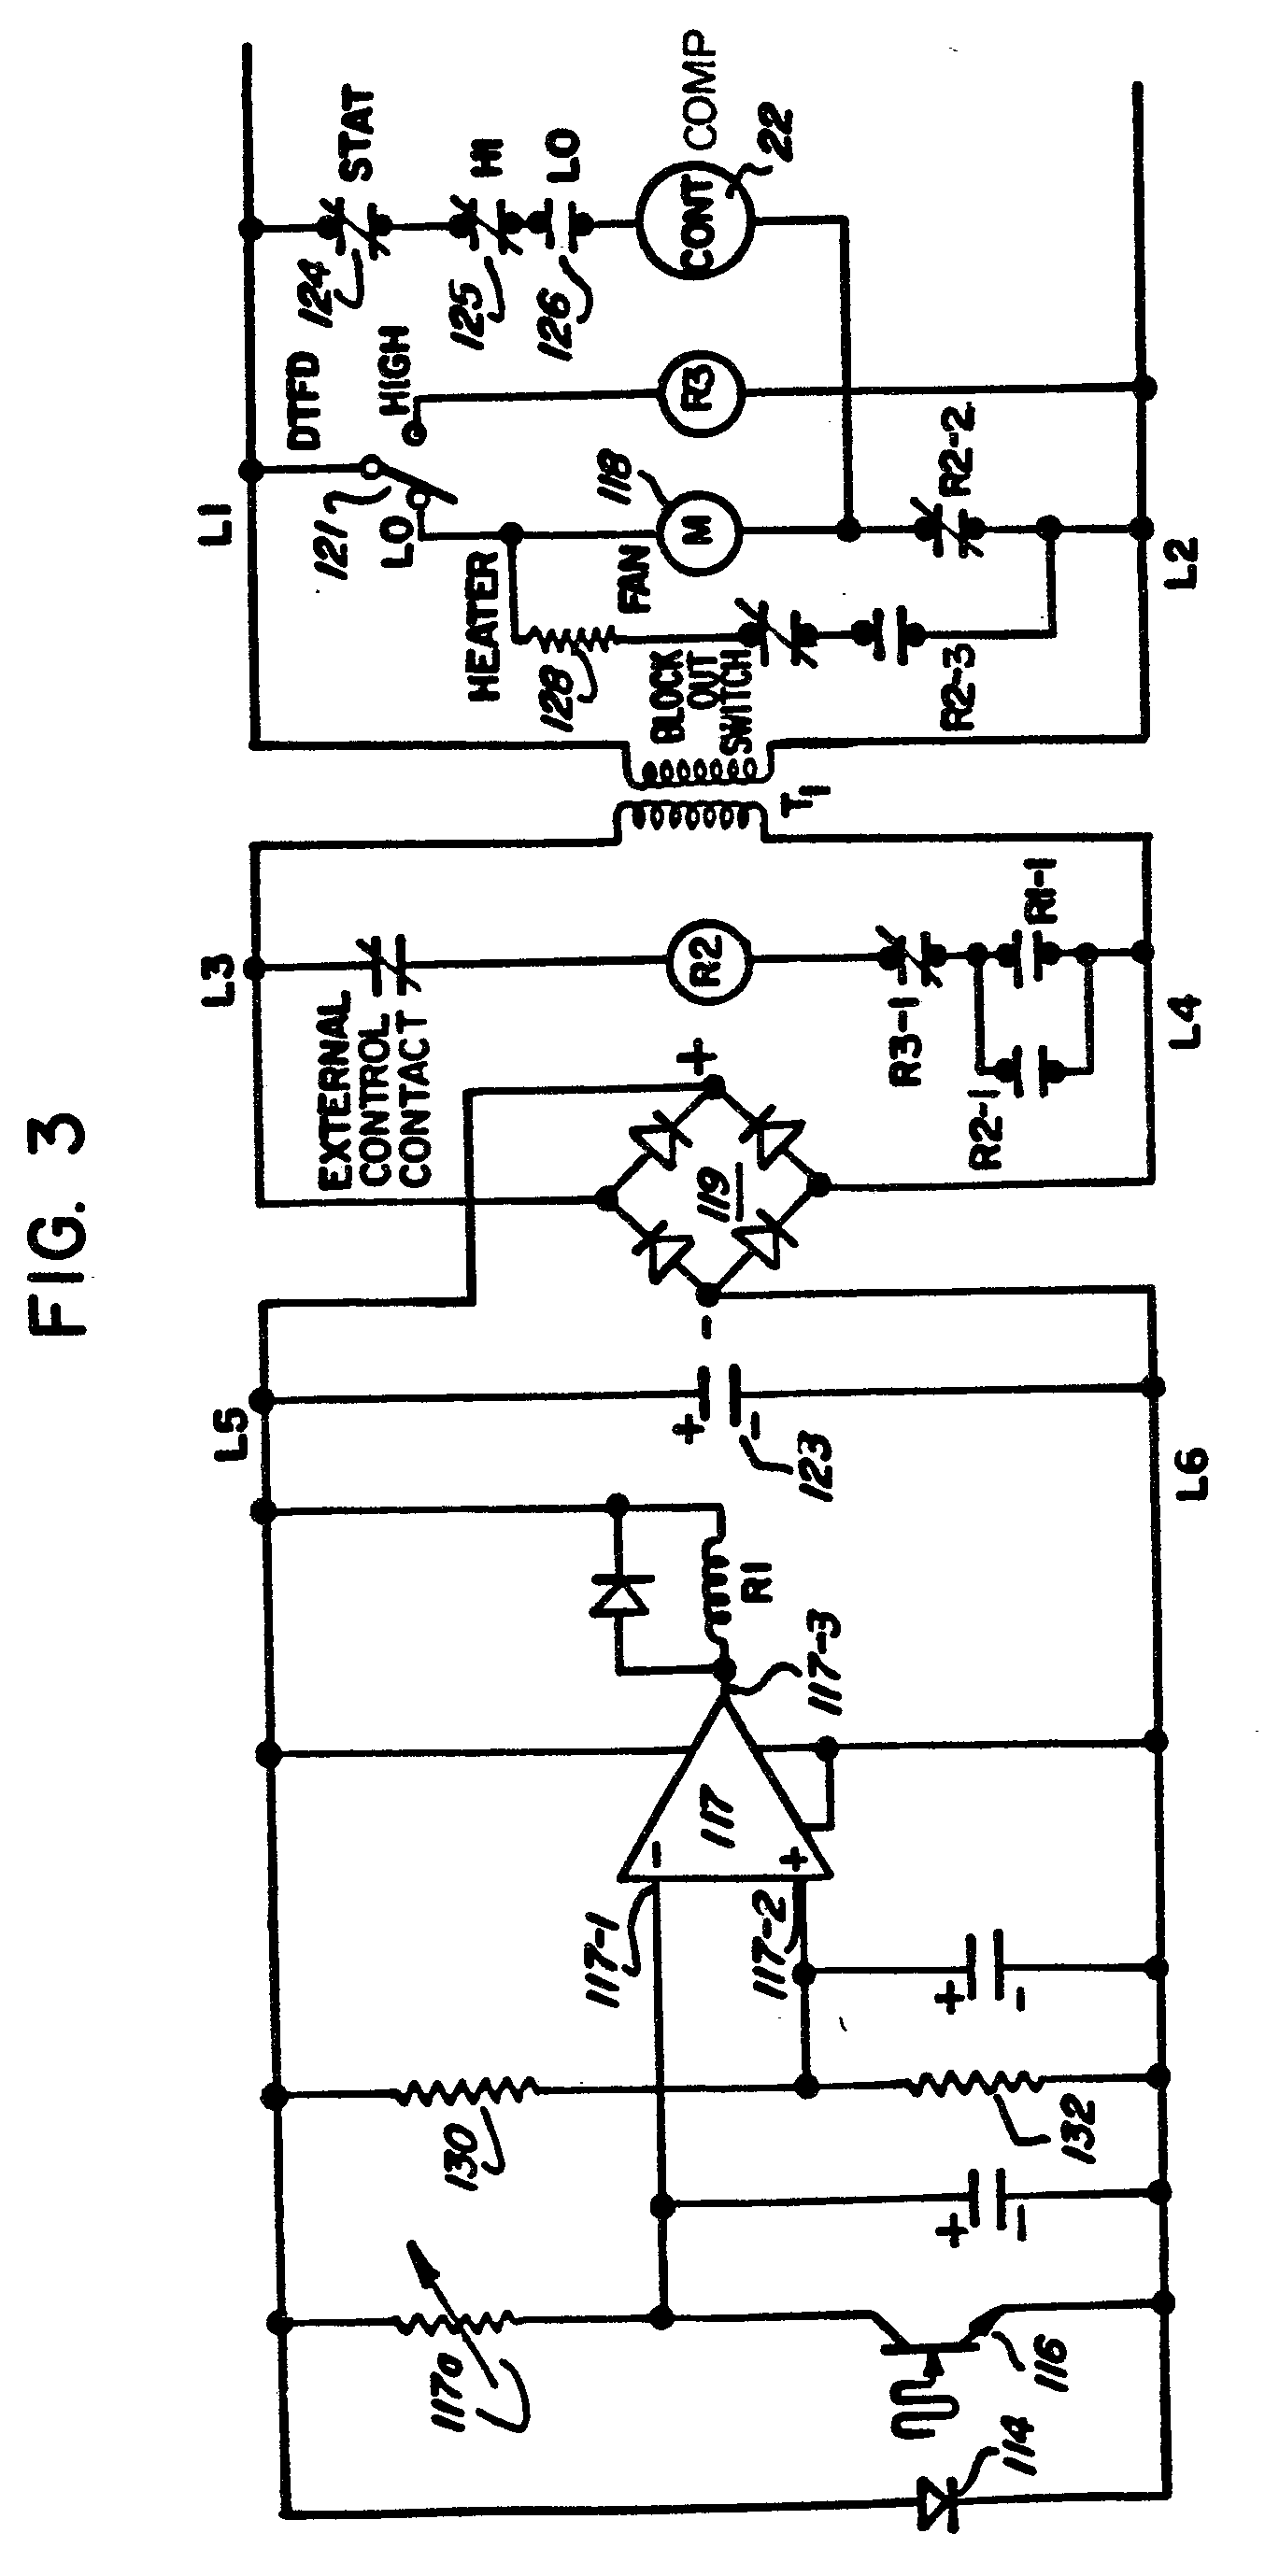 imgf0002 patent ep0066862a1 demand defrost system google patents russell evaporator wiring diagram at creativeand.co